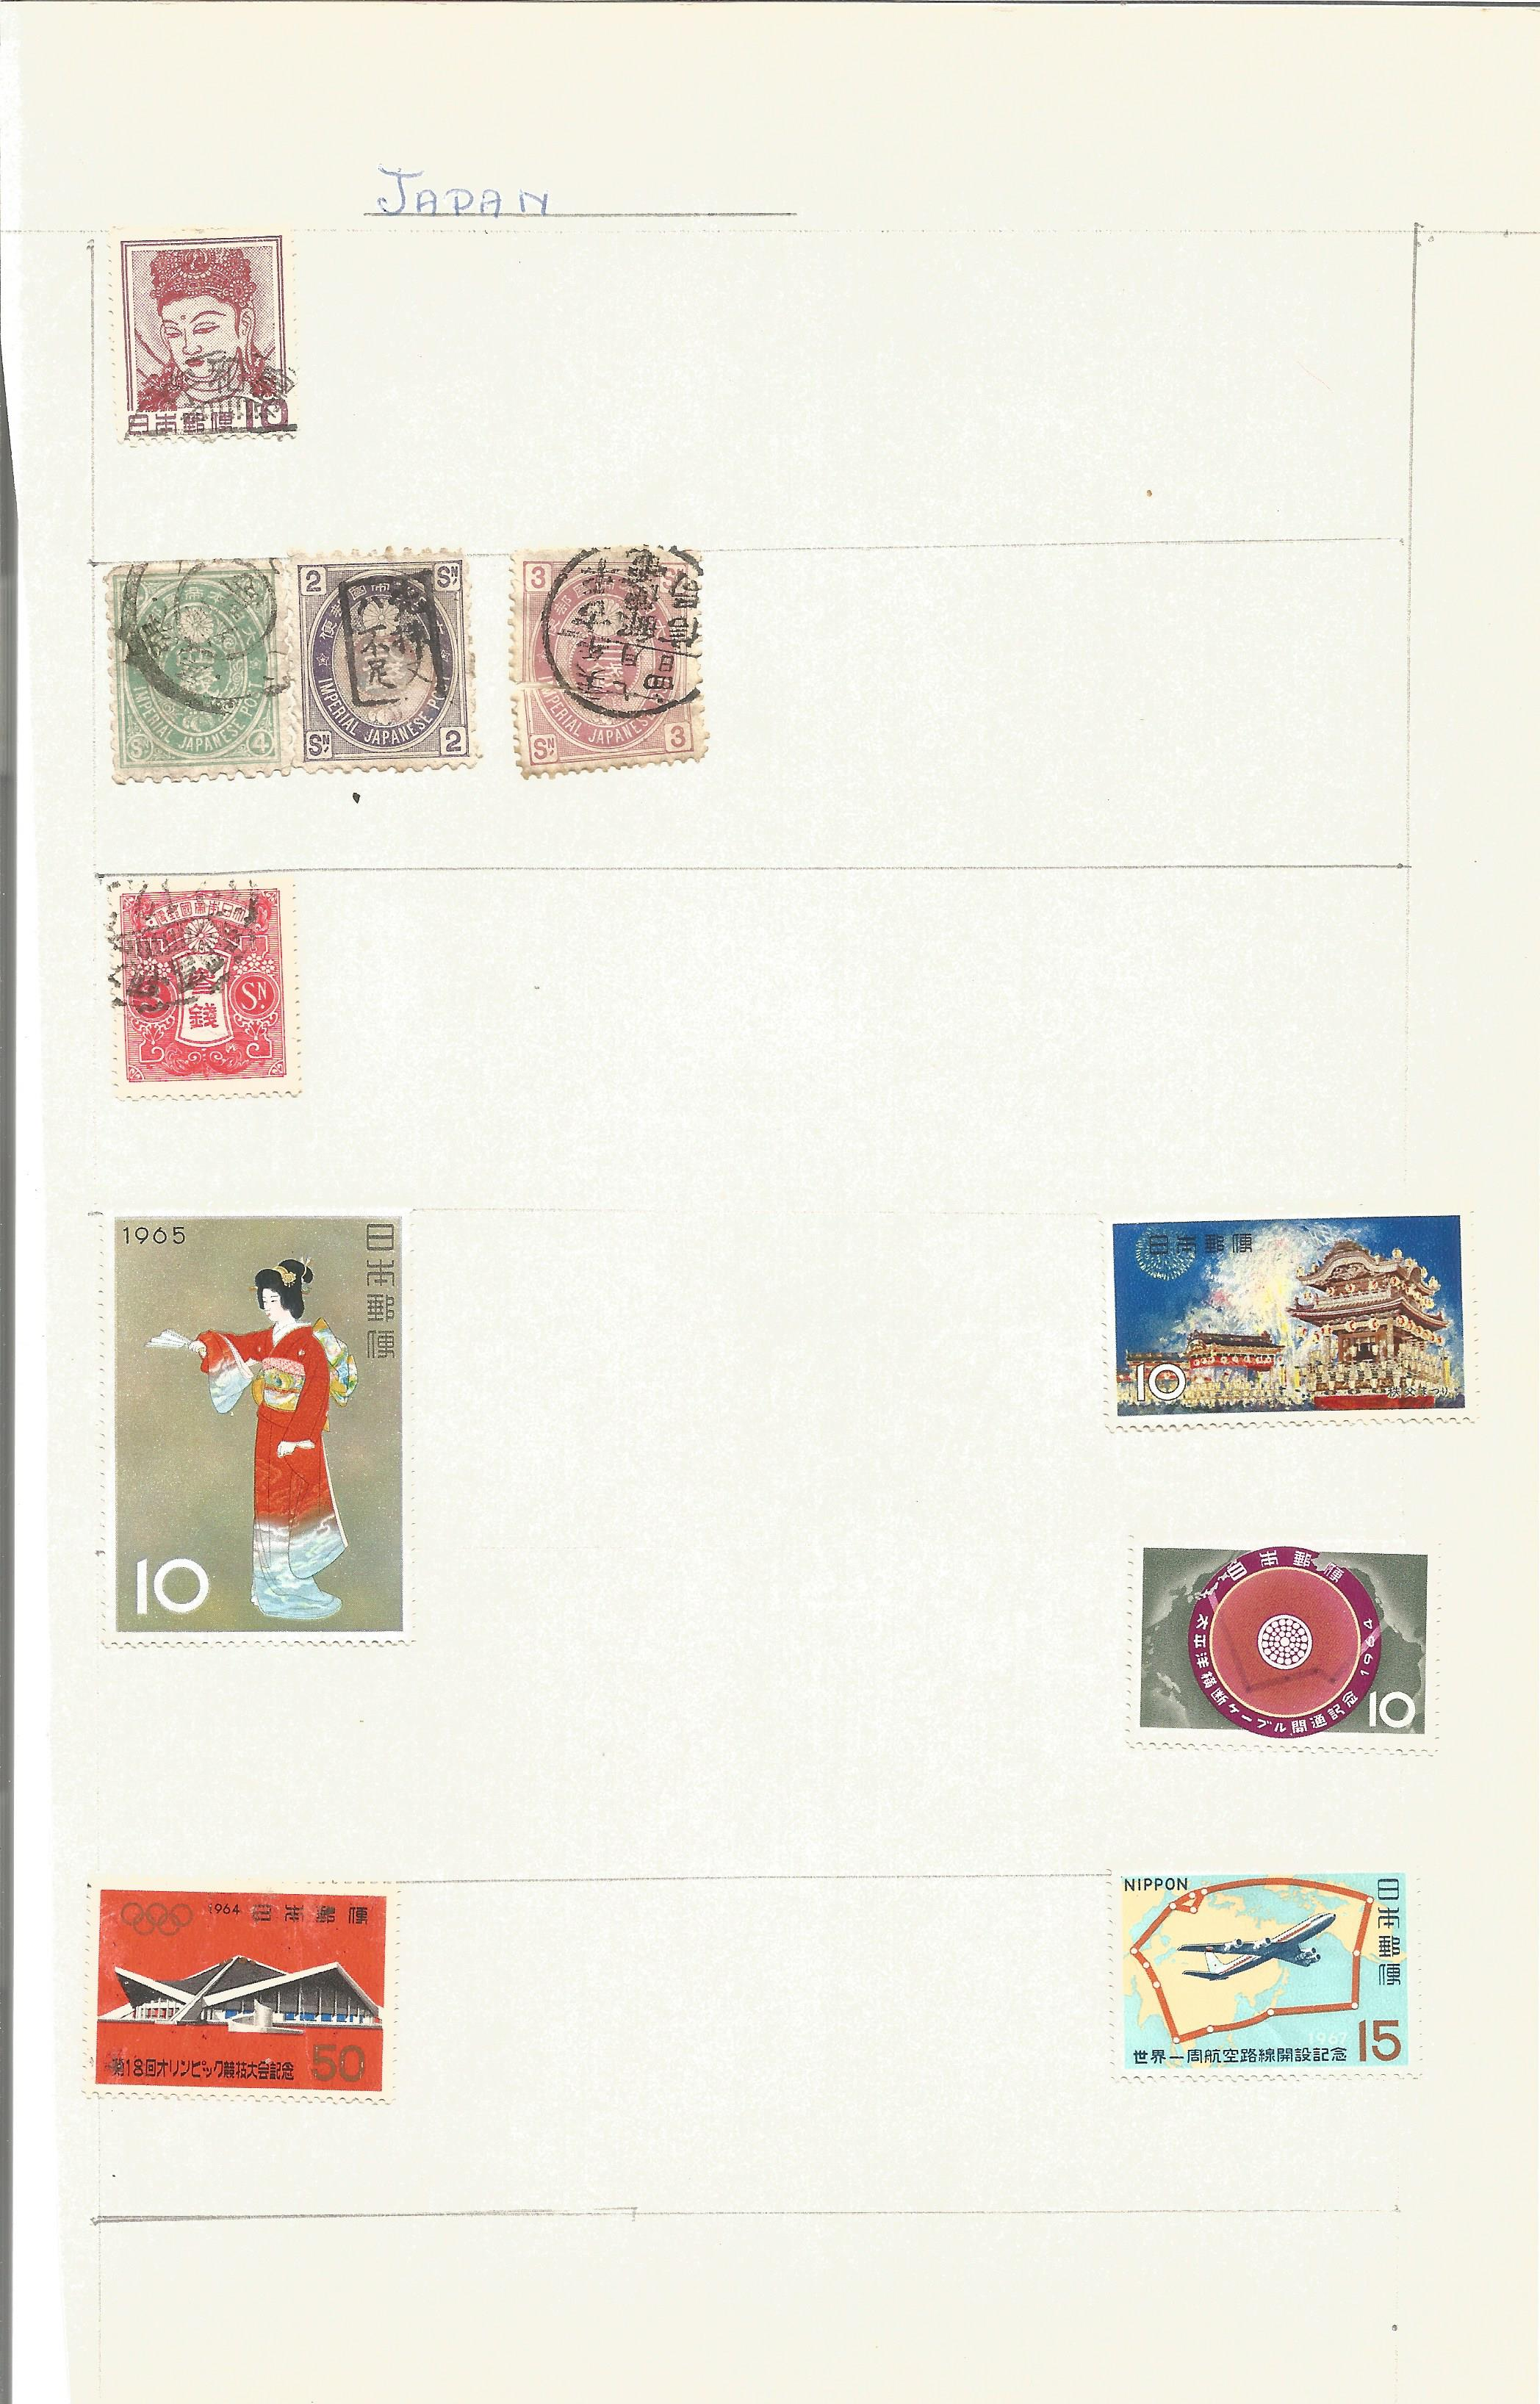 World stamp collection on 14 pages. Good condition. We combine postage on multiple winning lots - Image 4 of 4